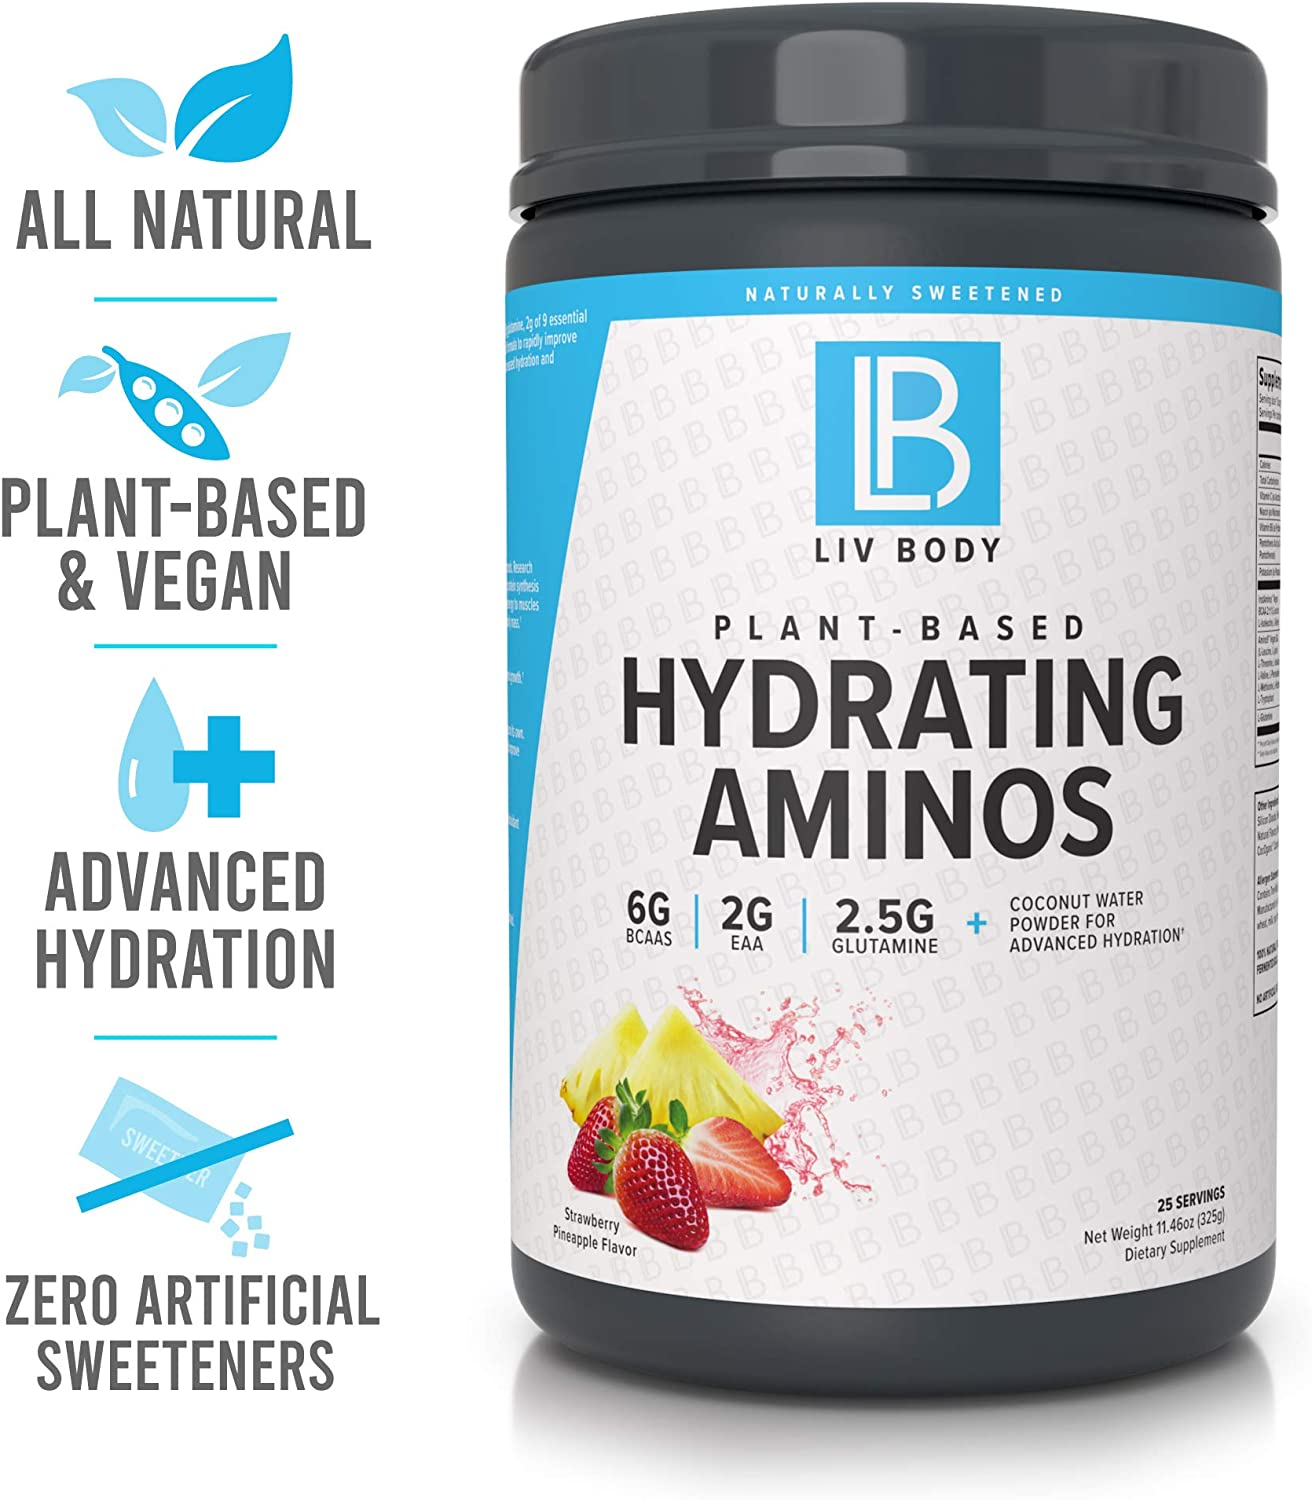 LIV Body LIV Plant Based Hydrating Aminos 6g of BCAA, 2g of EAA 2.5g of Glutamine Coconut Water Powder for Advanced Hydration Strawberry Pineapple